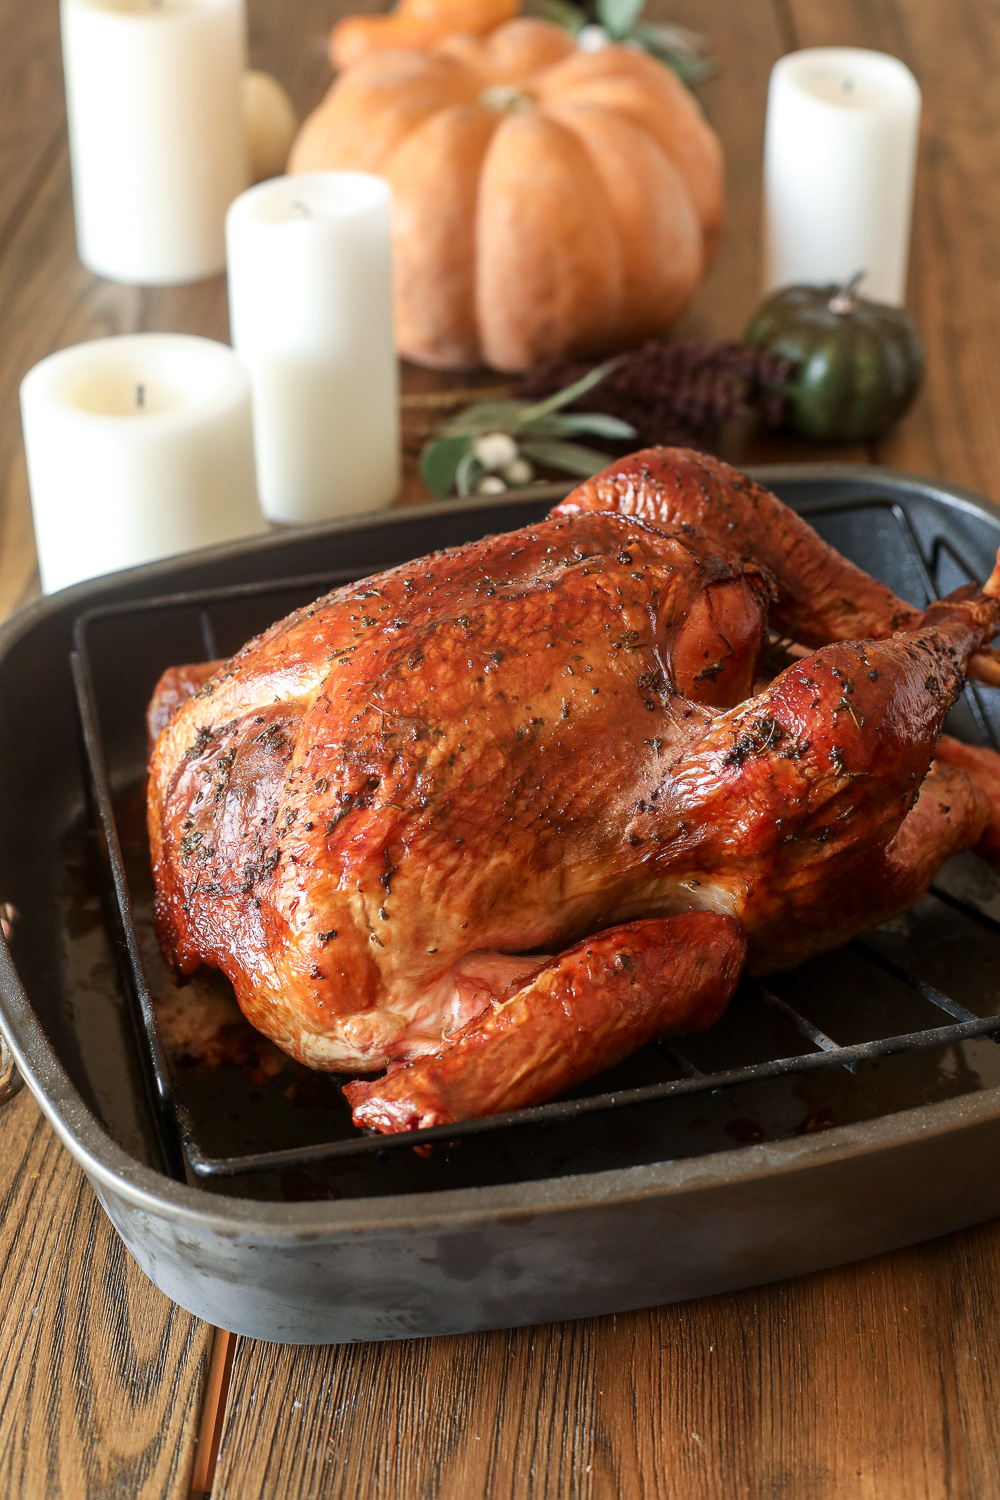 This Whole30 Smoked Turkey recipe is simple, delicious and perfect for saving oven space on thanksgiving!